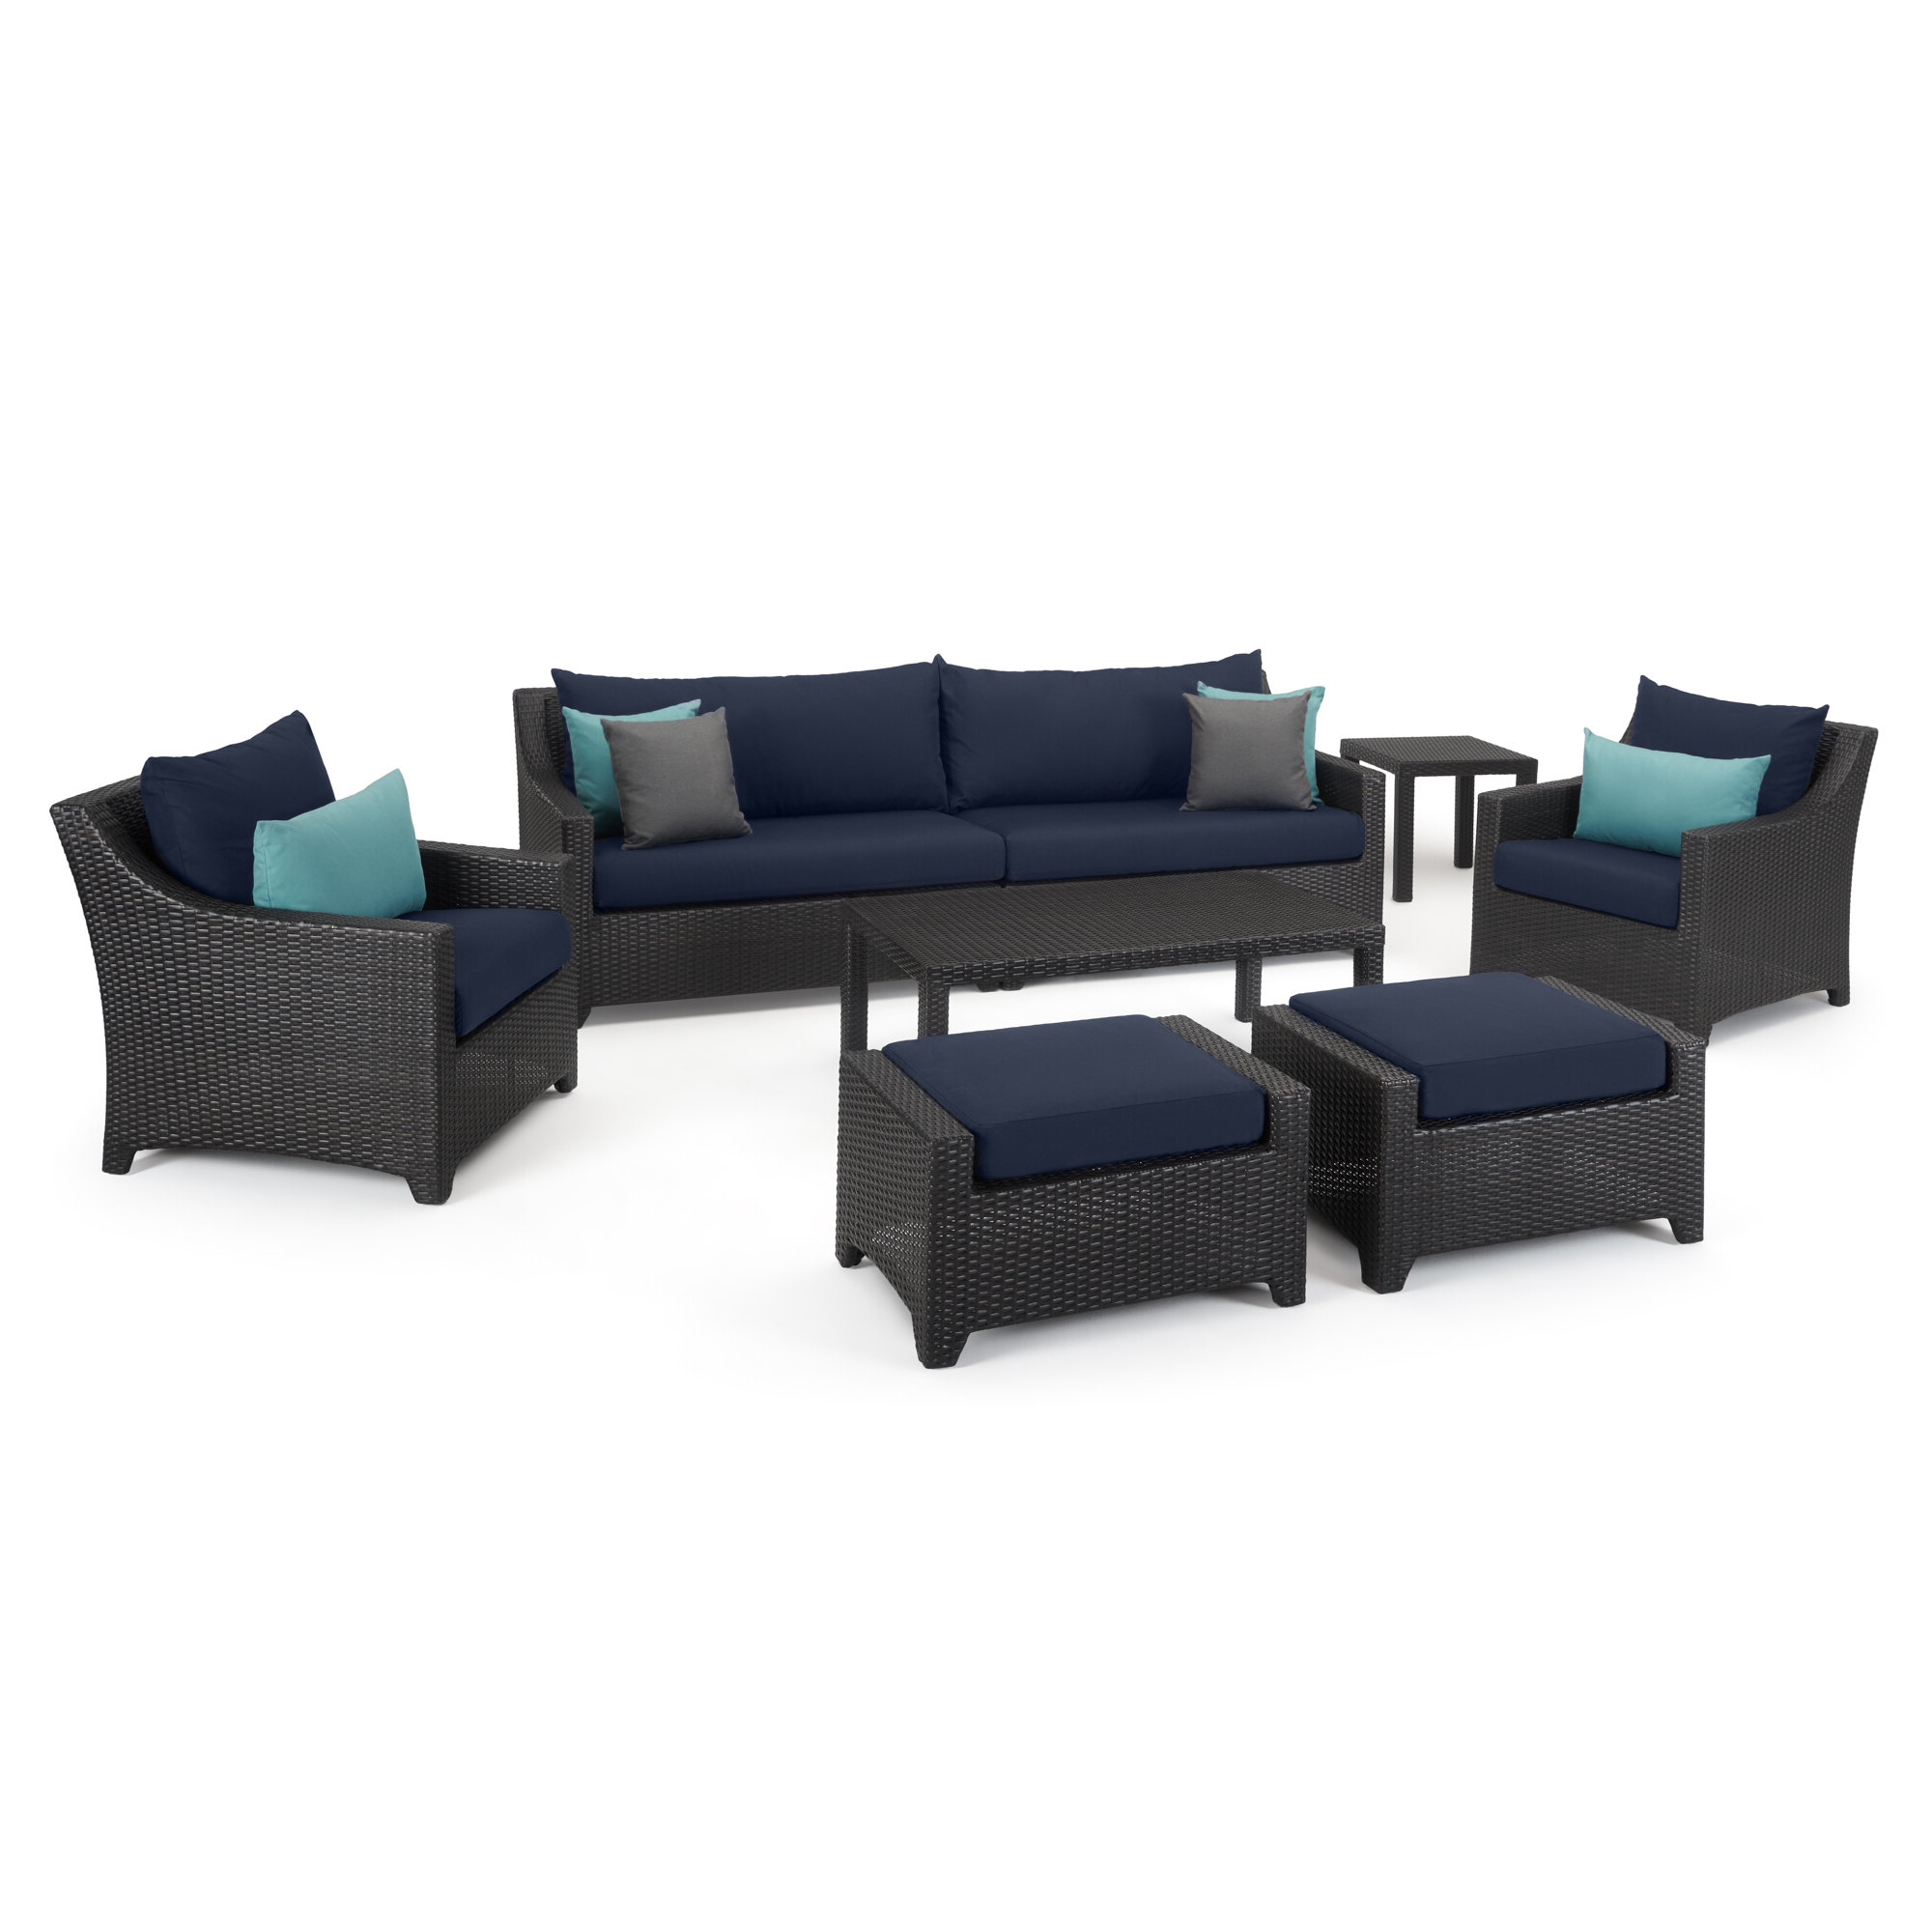 Northridge Loveseats With Cushions Within 2019 Northridge 8 Piece Sofa Set With Cushions (View 16 of 20)